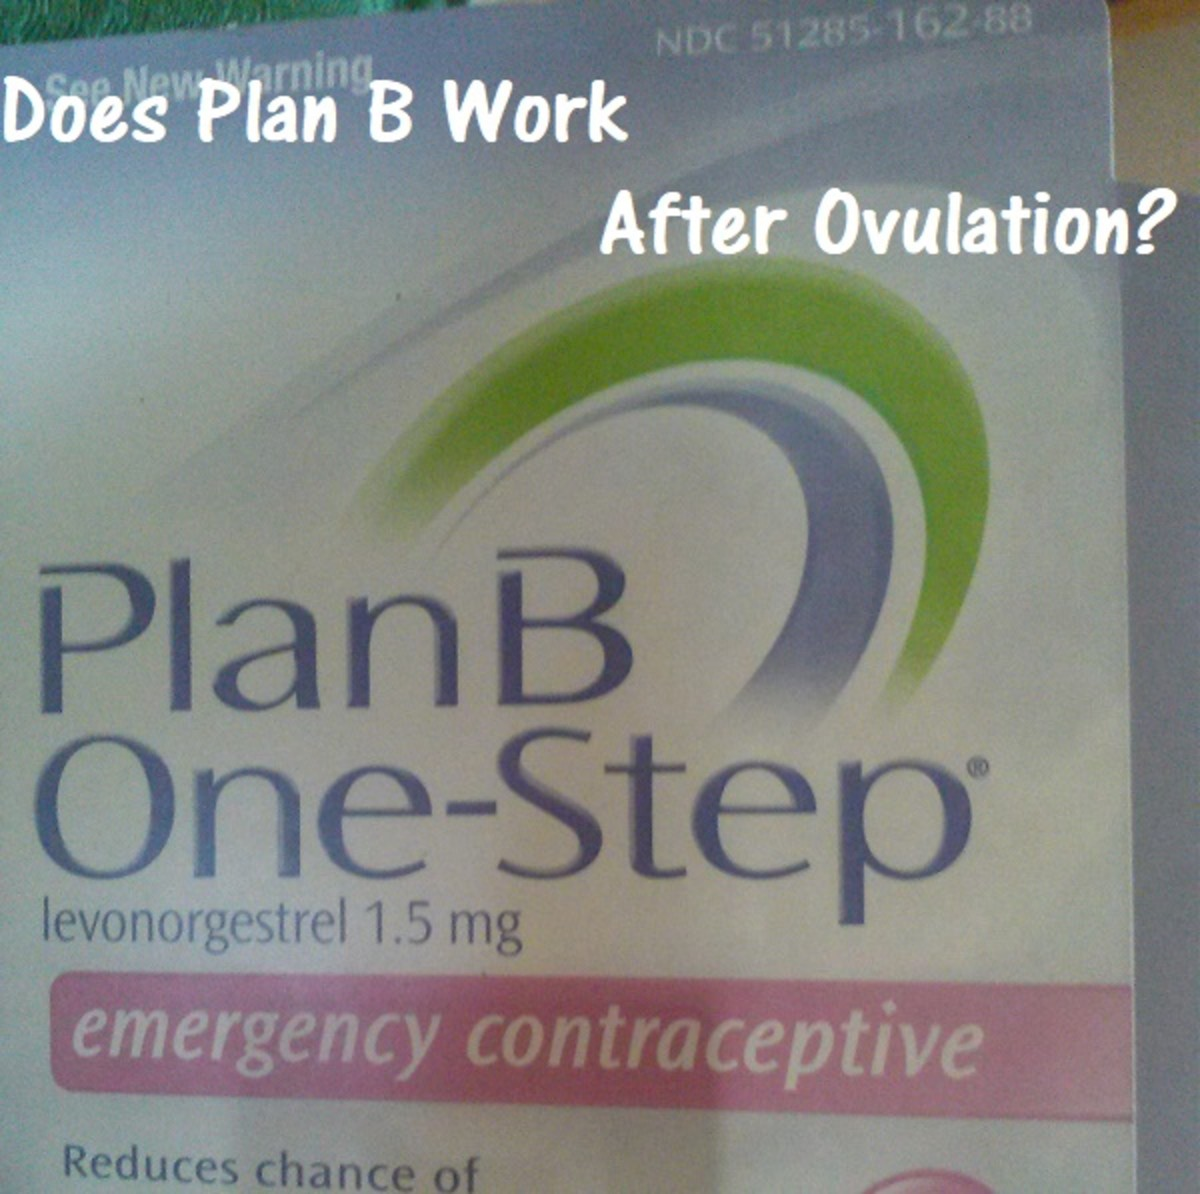 Will Plan B Work After Ovulation?